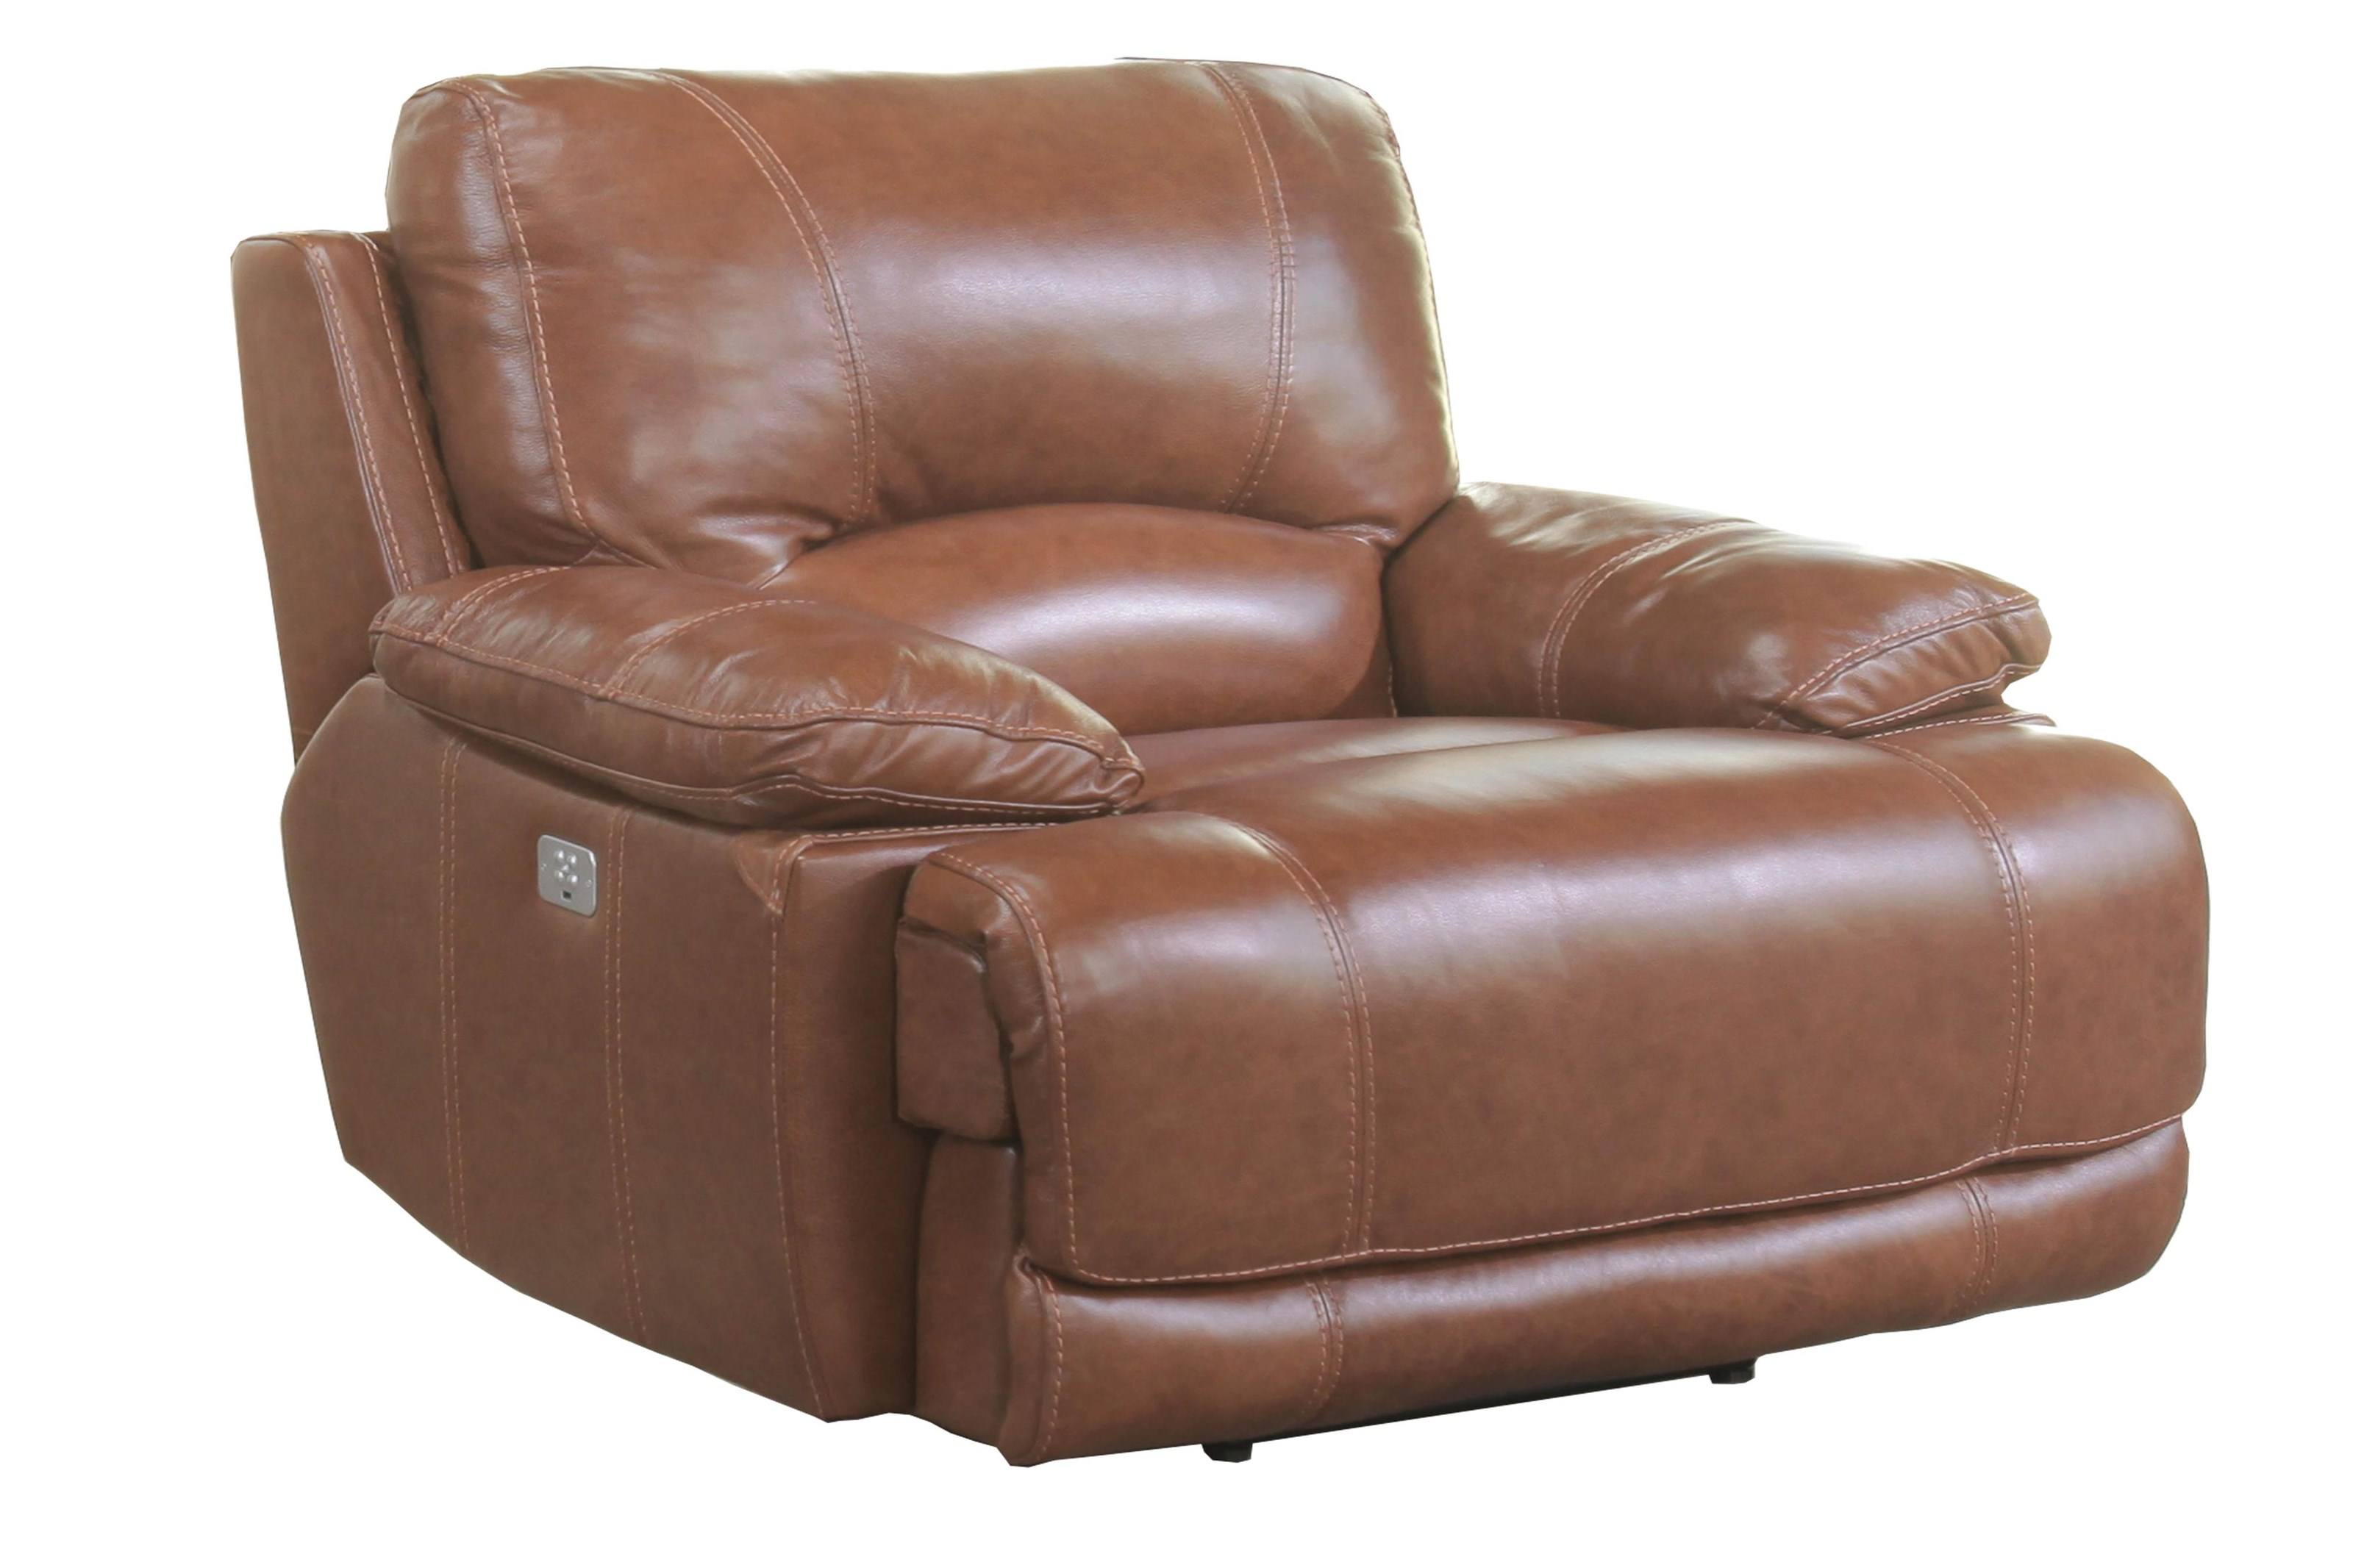 Cheers Sofa 5185 Power Recliner with Power Headrest - Item Number: 5185-L1-4040